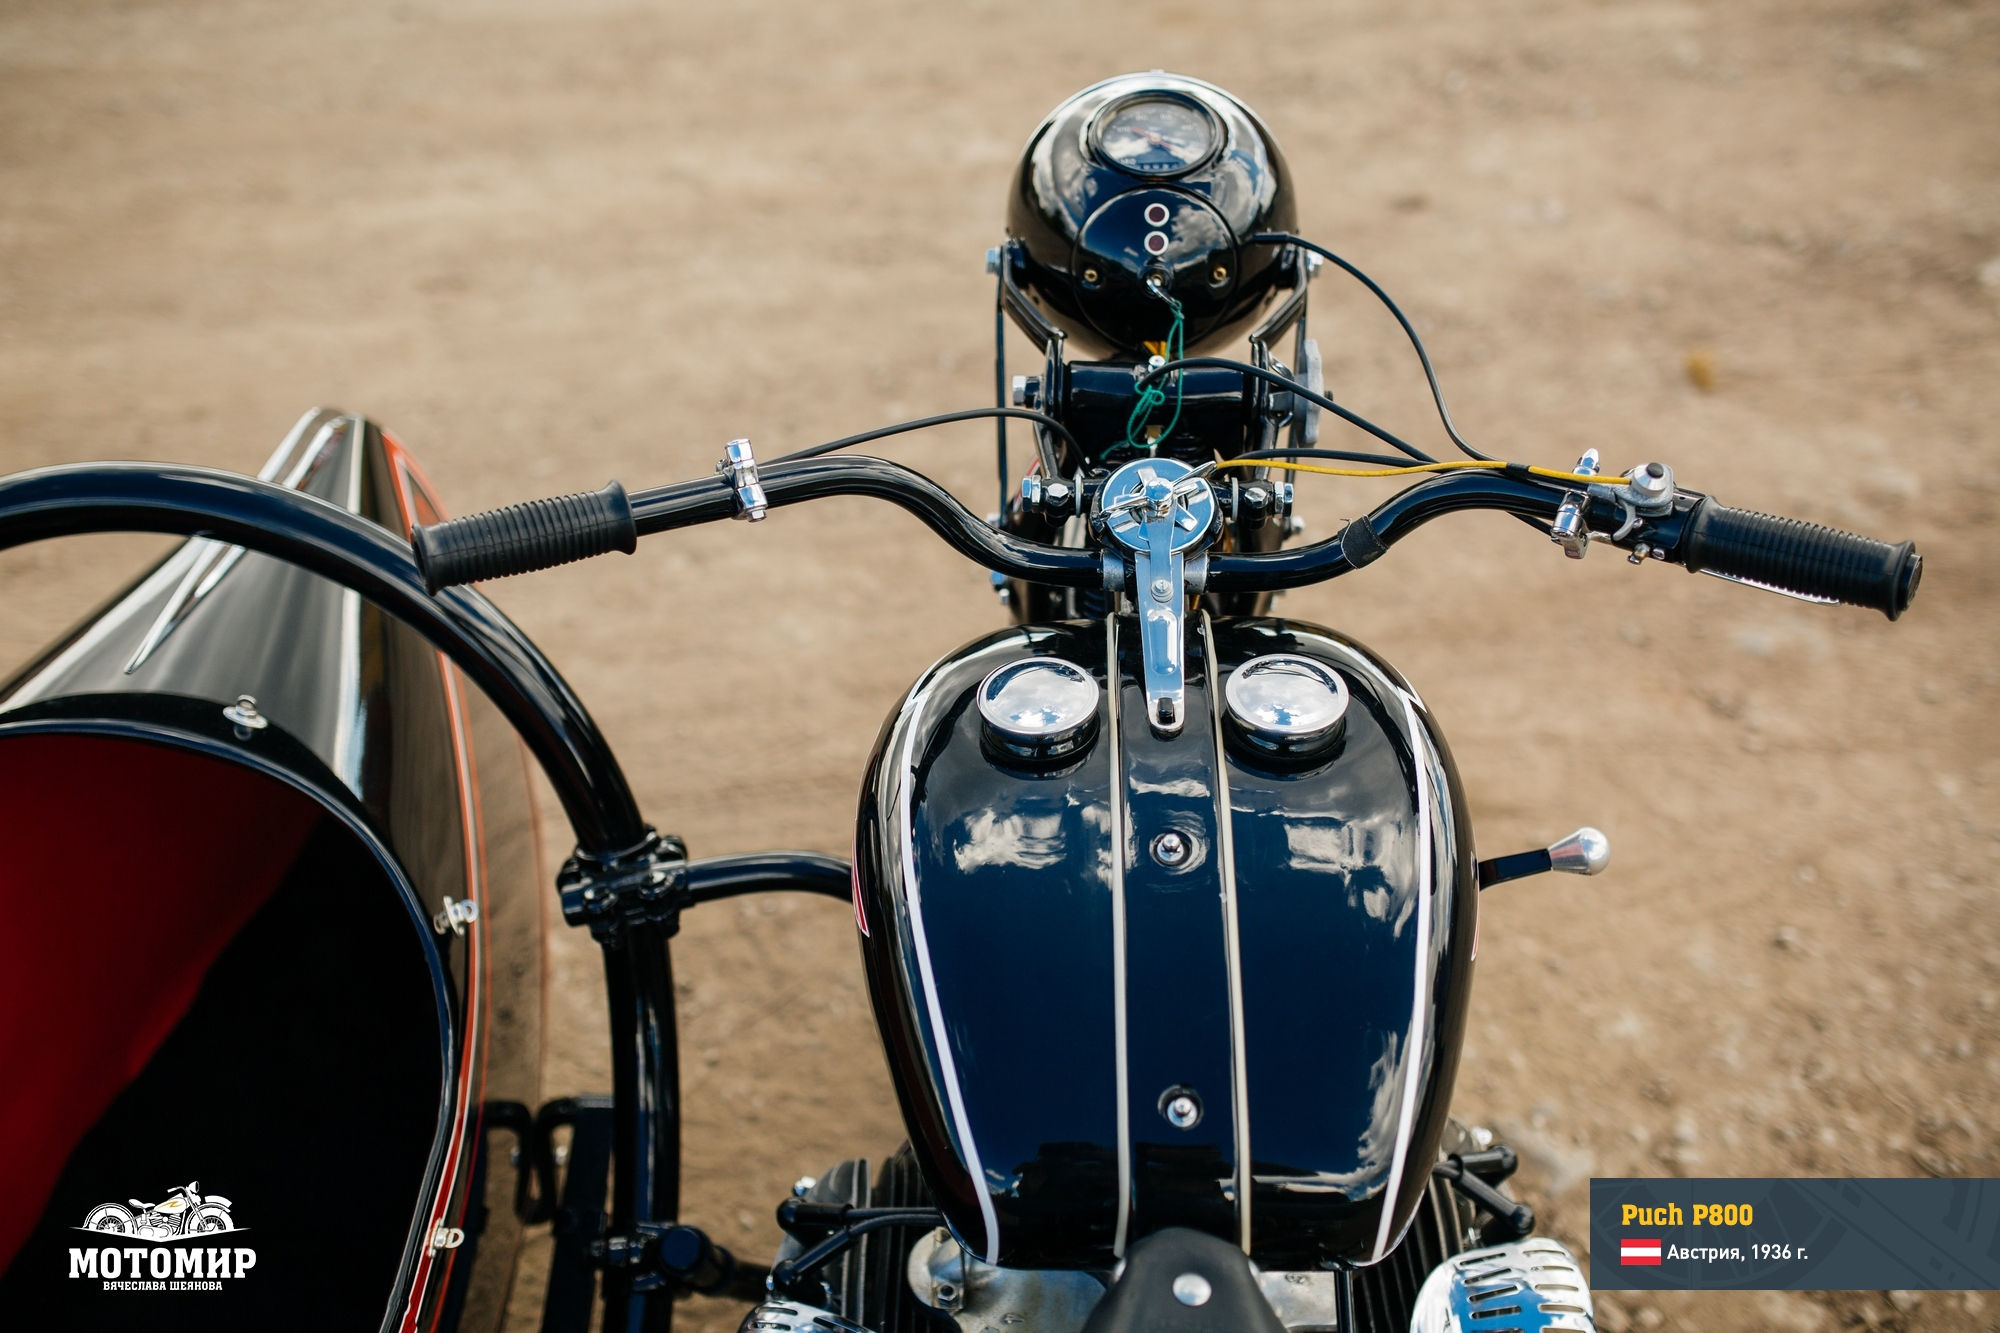 puch-p800-201510-web-25